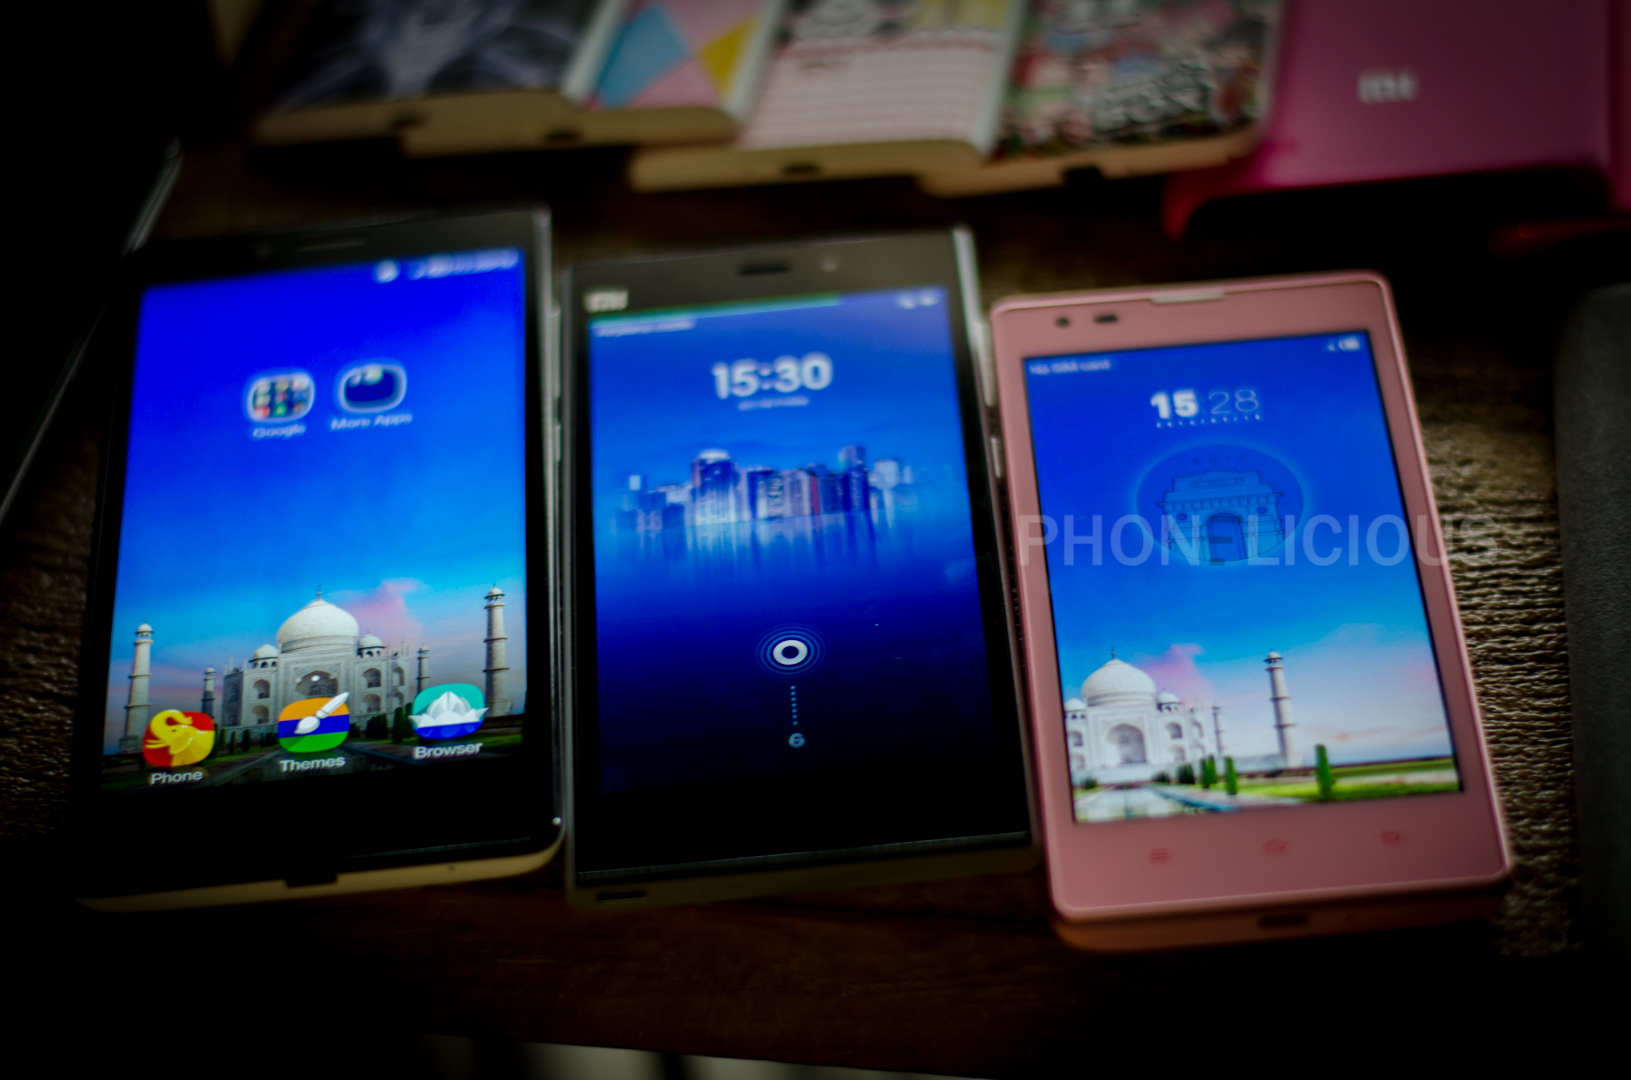 RedMI 1s compared to other Snapdragon 400 chipset mobiles